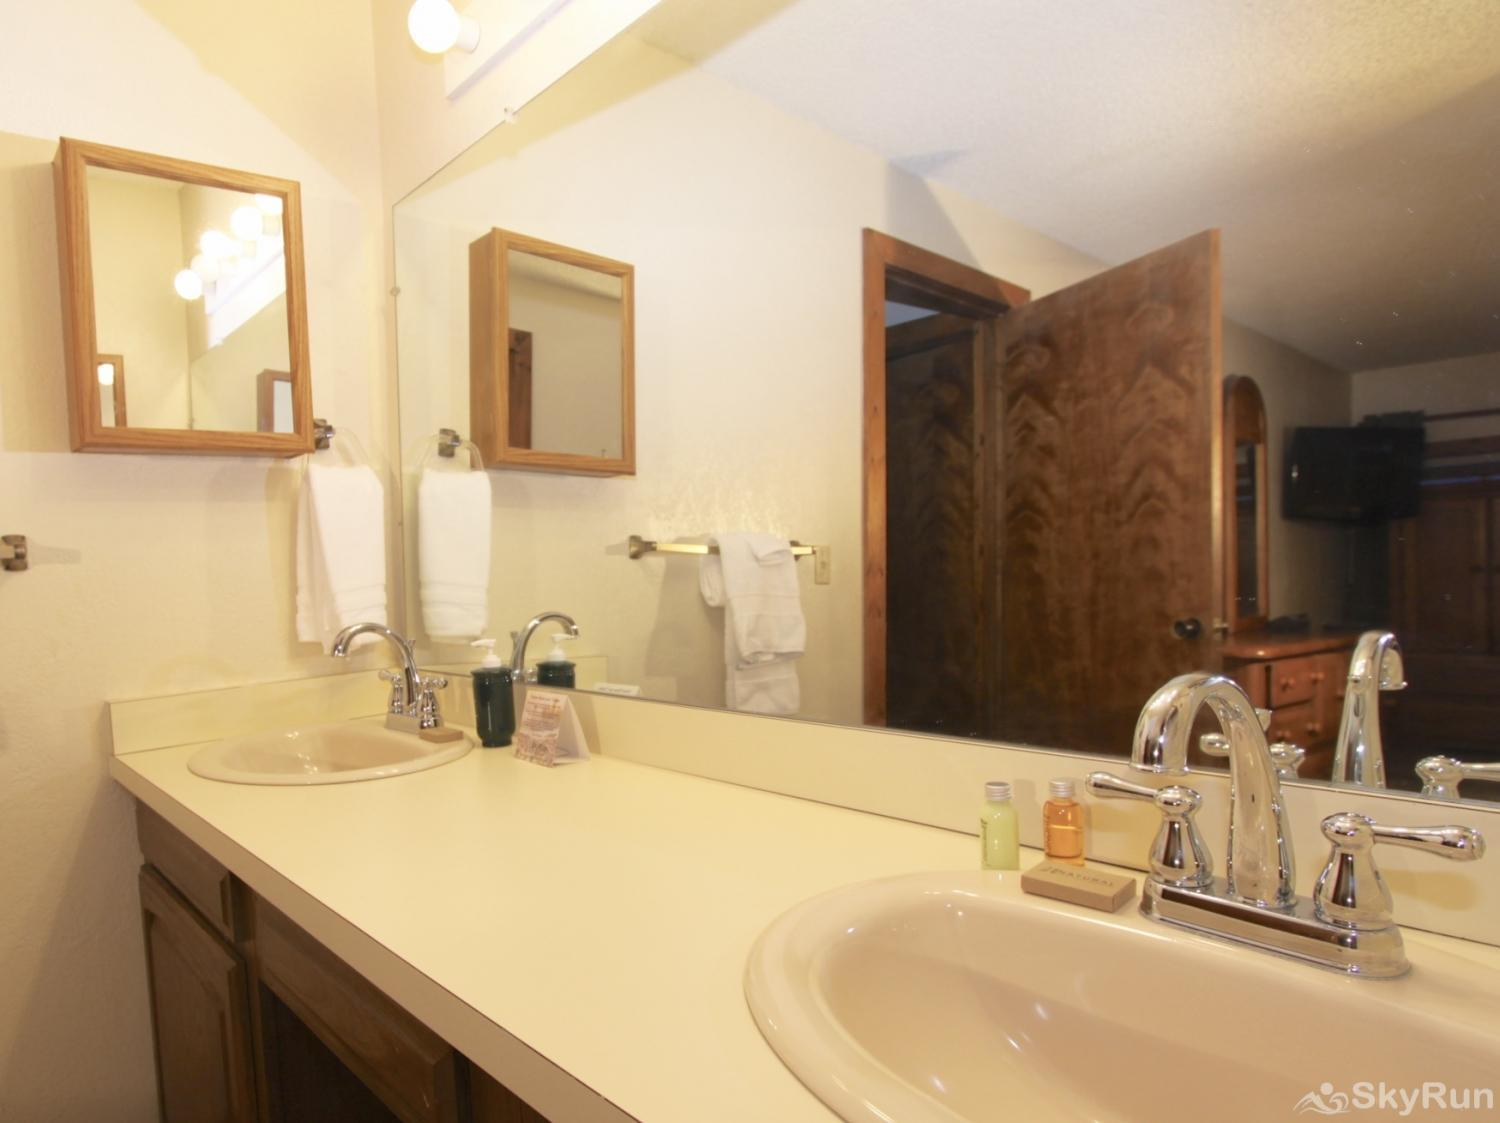 113A WPTC - Cranmer Rd Master Suite